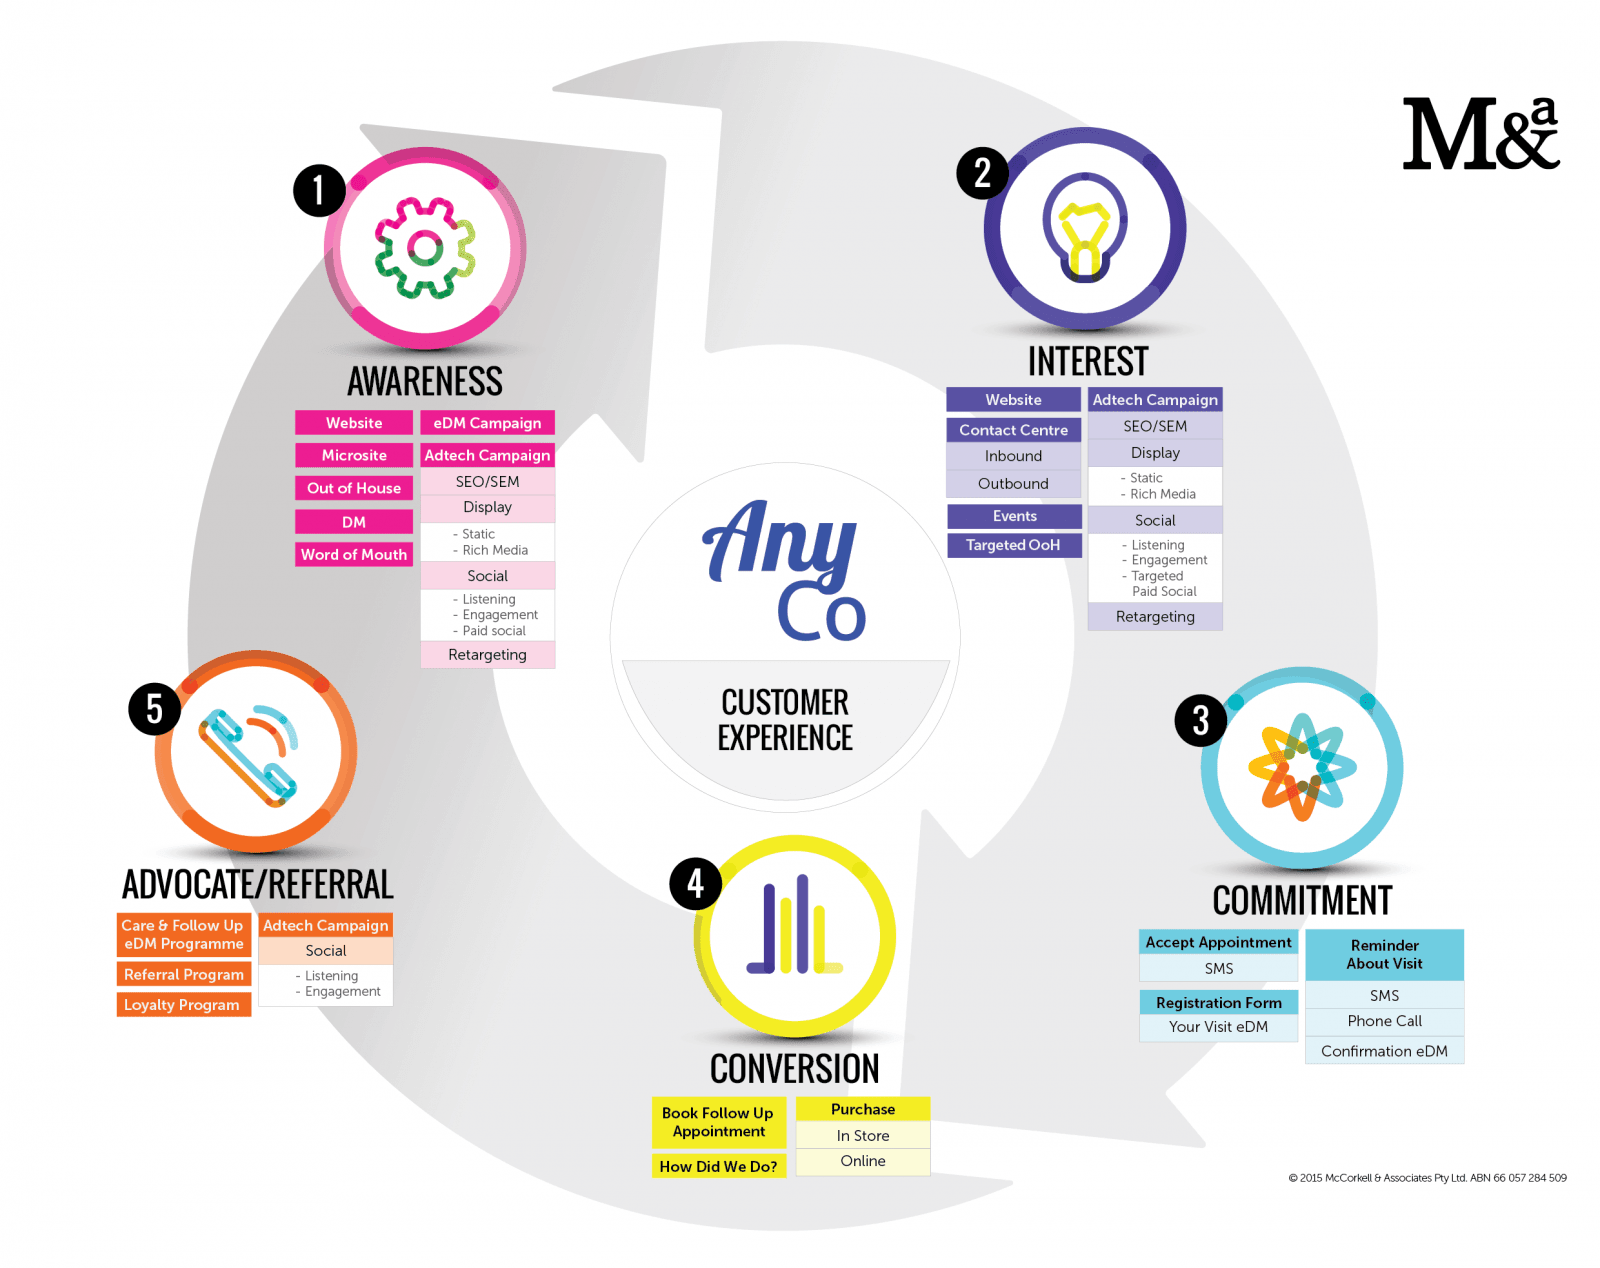 Customer Experience Journey - AnyCo (Lge)